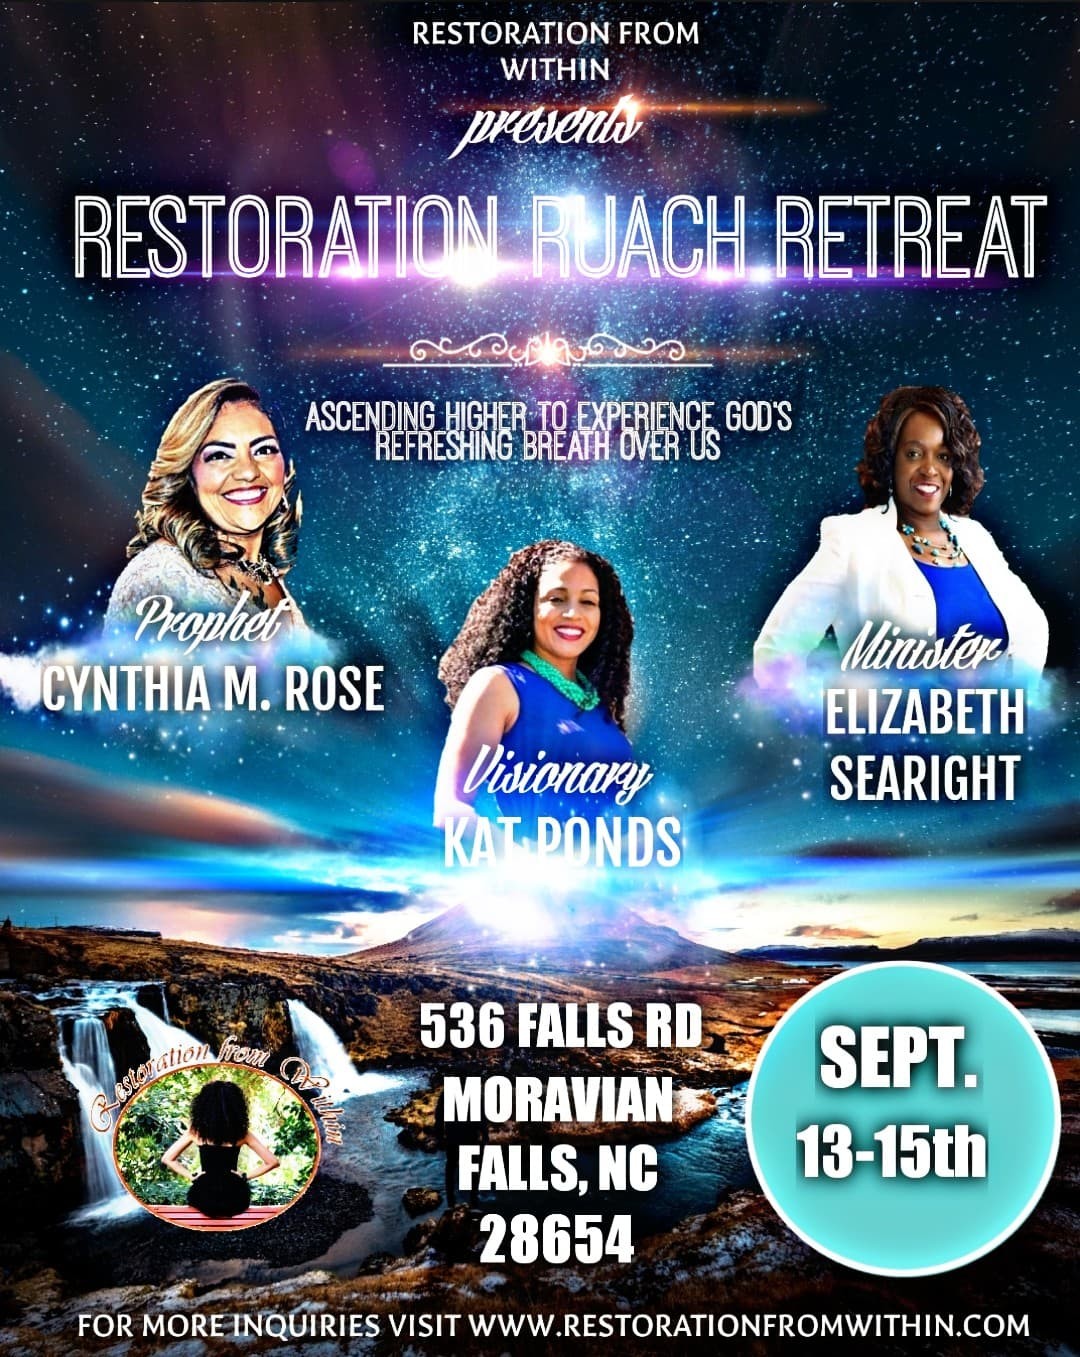 Restoration Weekends: Ruach(God's Breath) Retreat